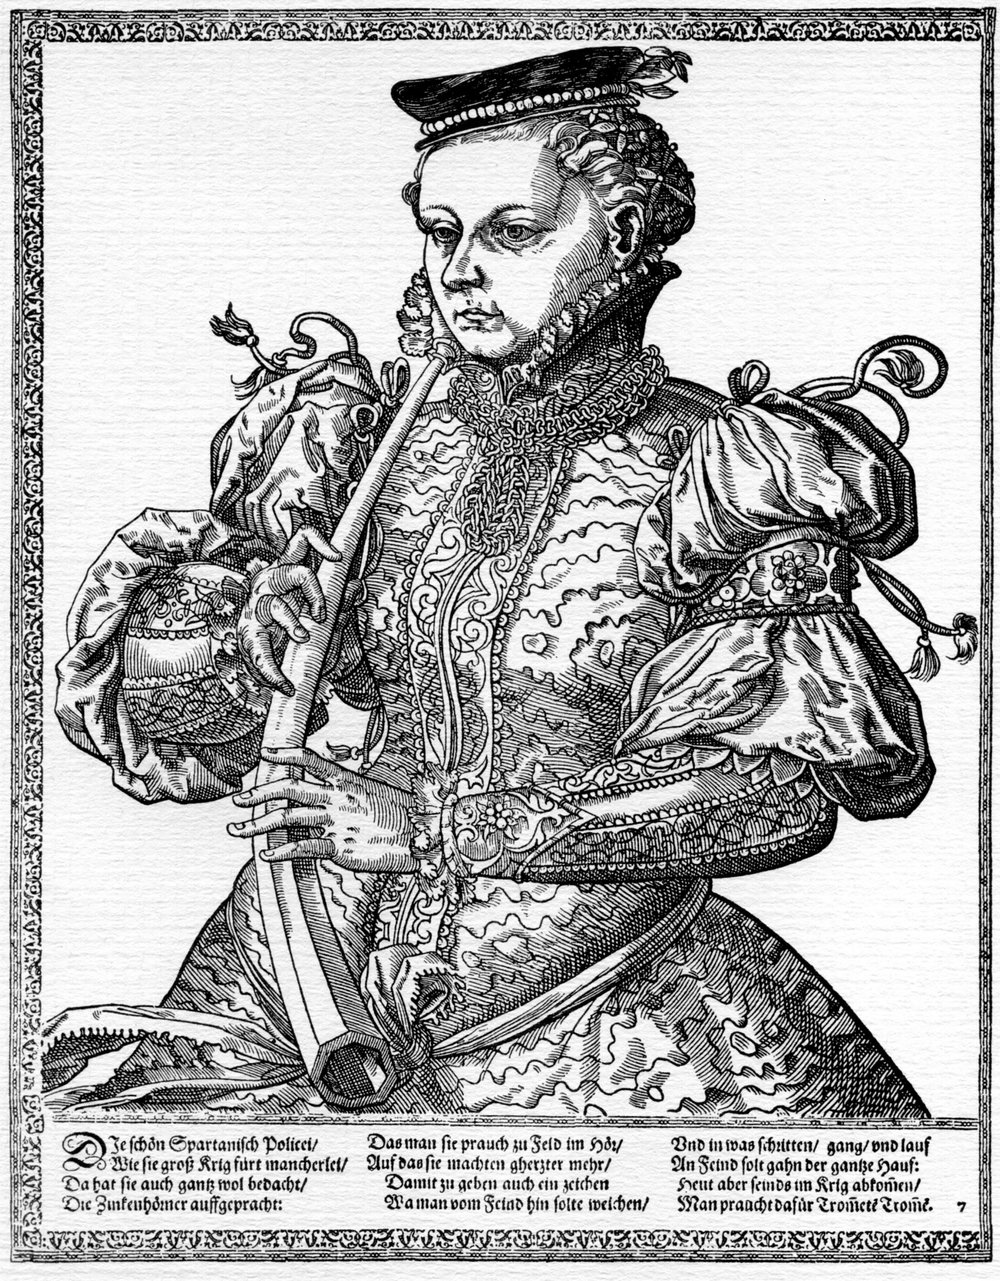 Tobias Stimmer (1539-1584)Woodcut from a book of portraits of well-dressed women playing instruments, 1570s.